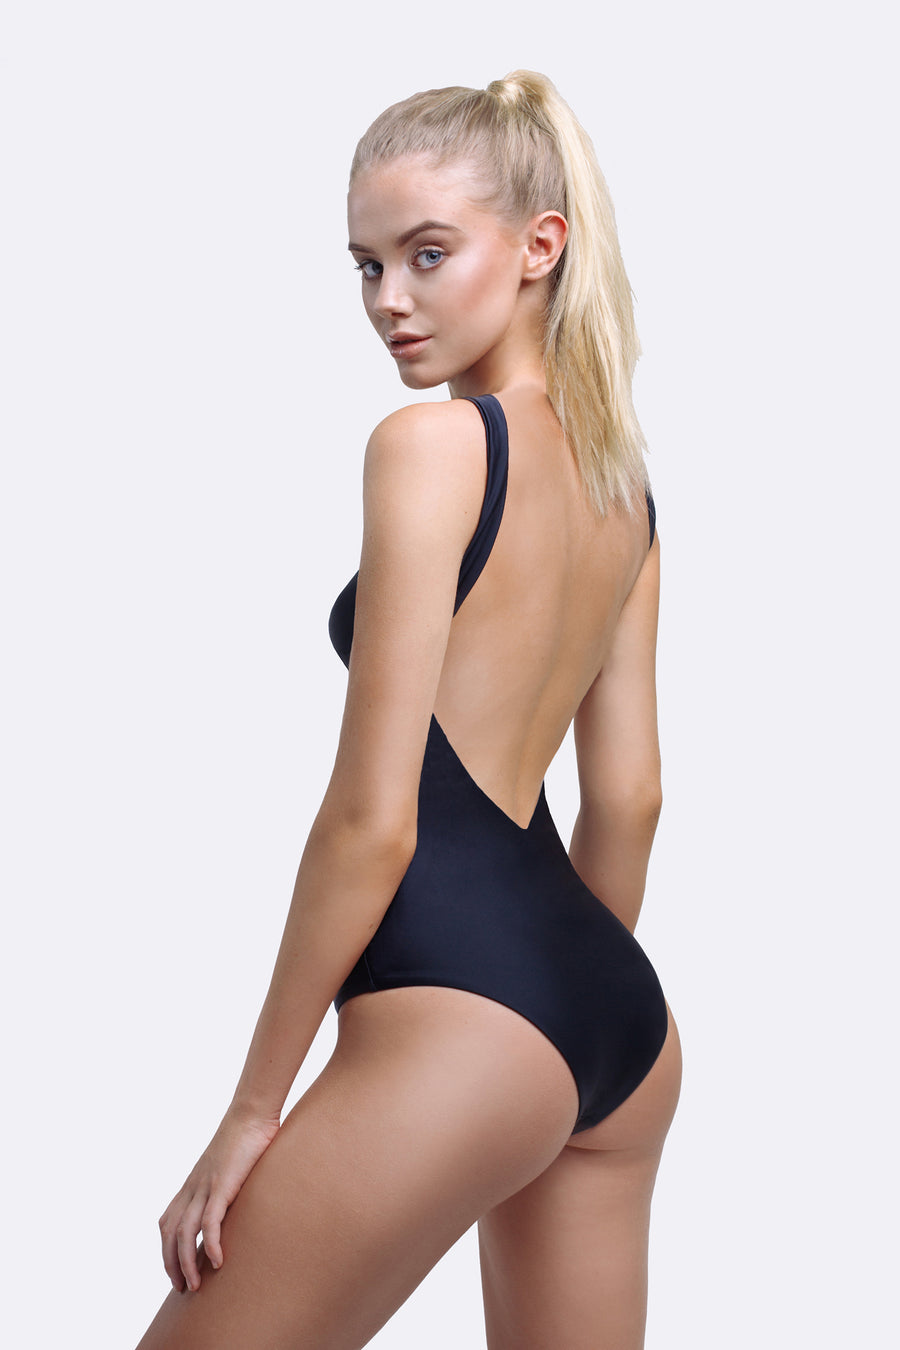 Black One Piece Swimsuit | Gia One Piece Black | Zingiber Australian Designer Swimwear Label  #blackonepieceswimsuit #beachwear #blackbathers